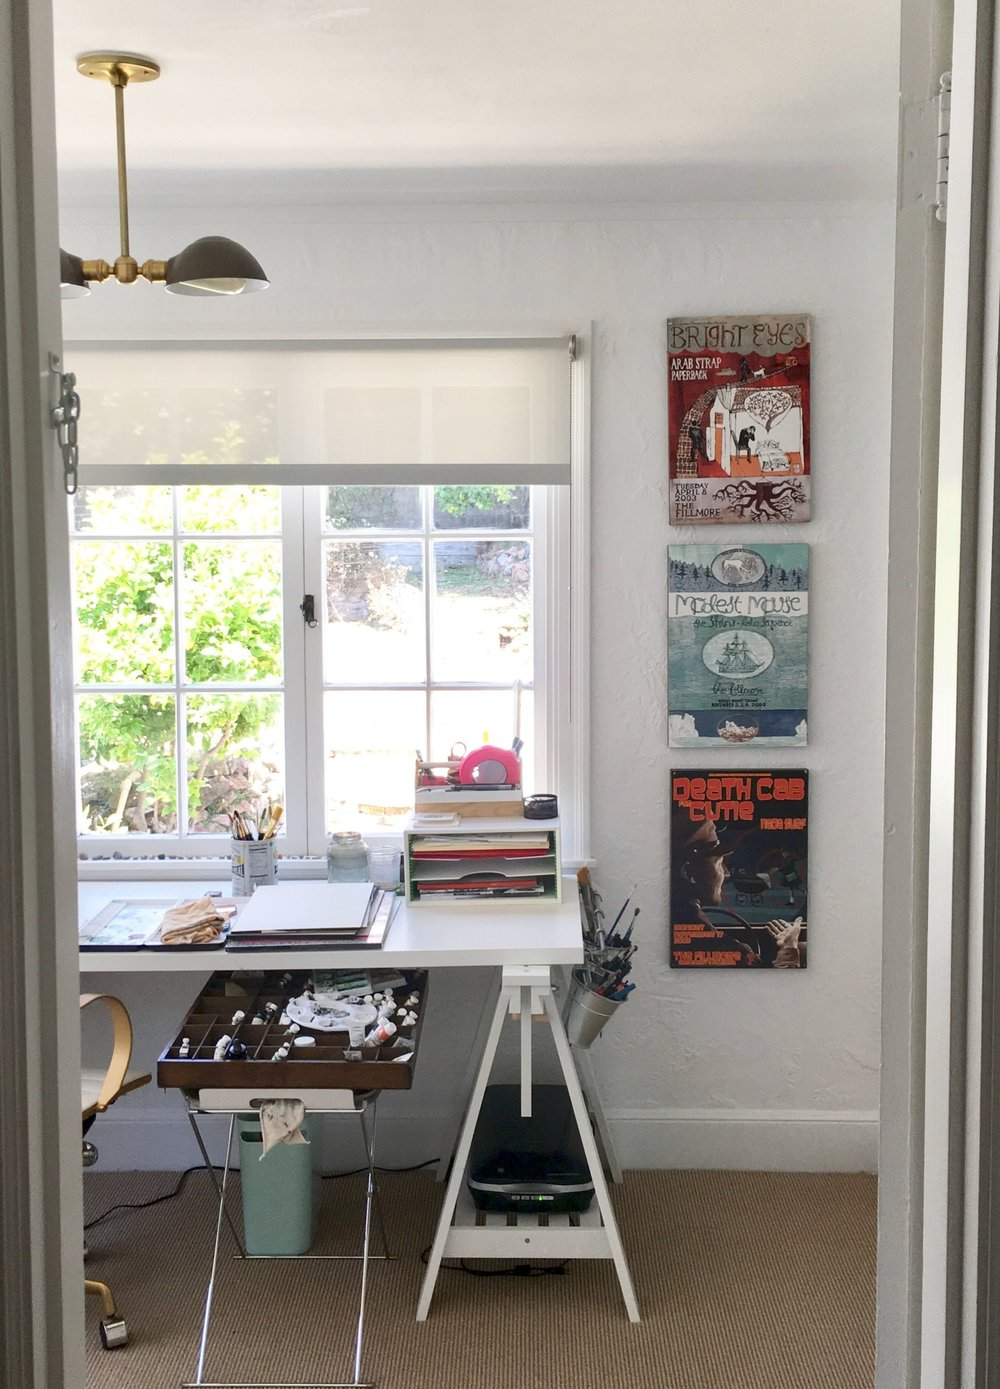 Looking in from the hallway we made when we separated this sun room from the bedroom. I use a lot of hot pink artist's tape. And I use a vintage letterpress tray to keep my paints (semi) organized. We collected the posters from concerts at the Fillmore over the years.